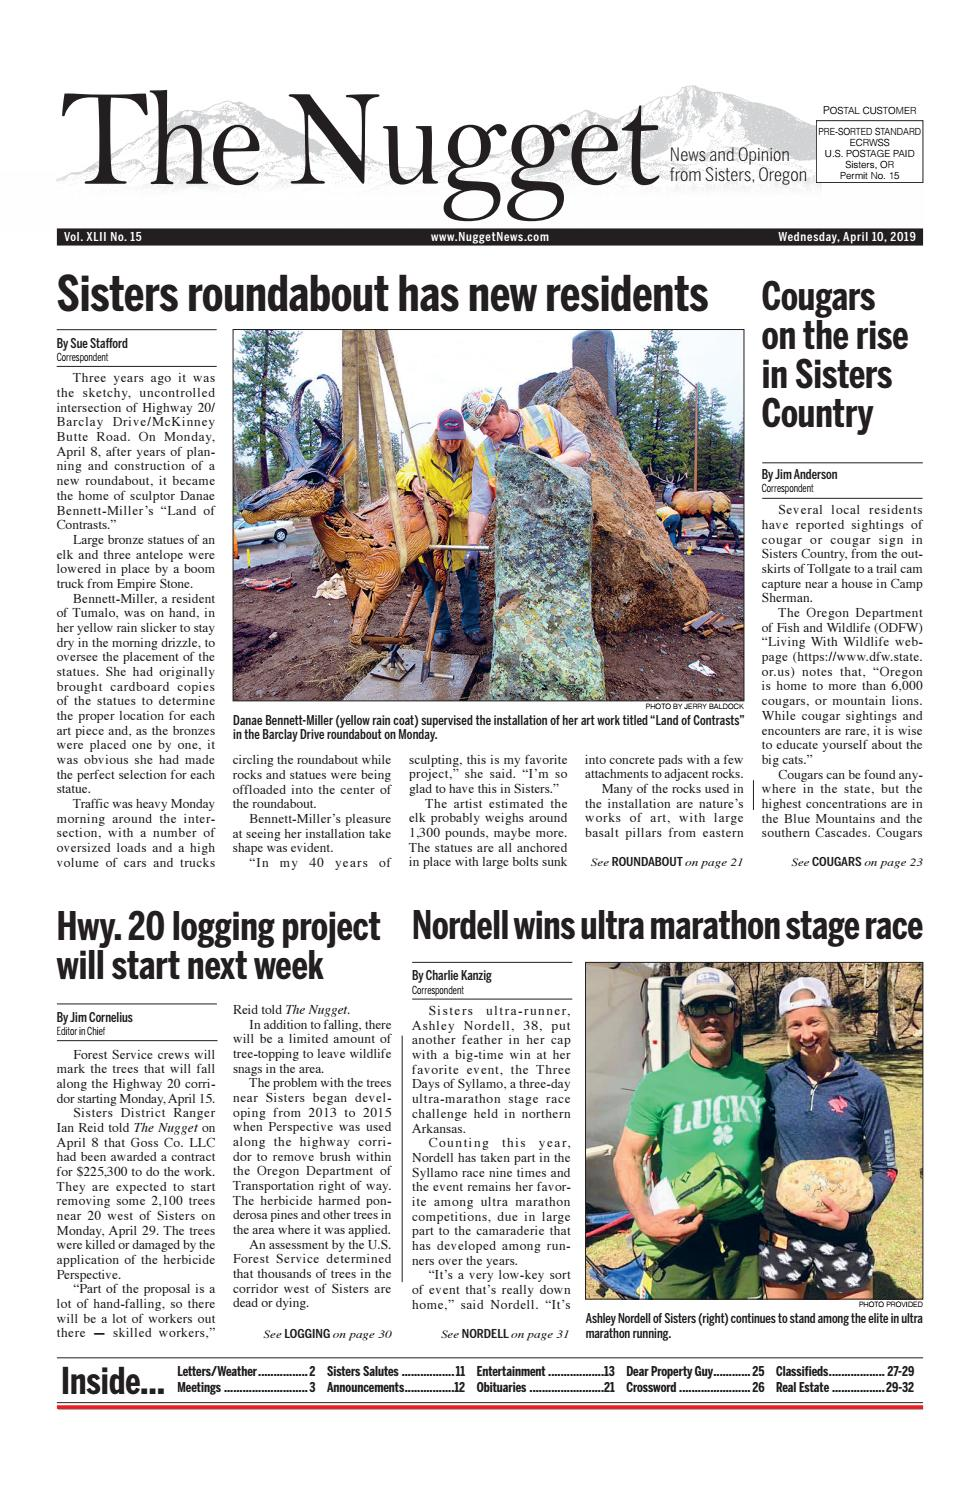 The Nugget Newspaper // Vol  XLII No  15 // 2019-4-10 by